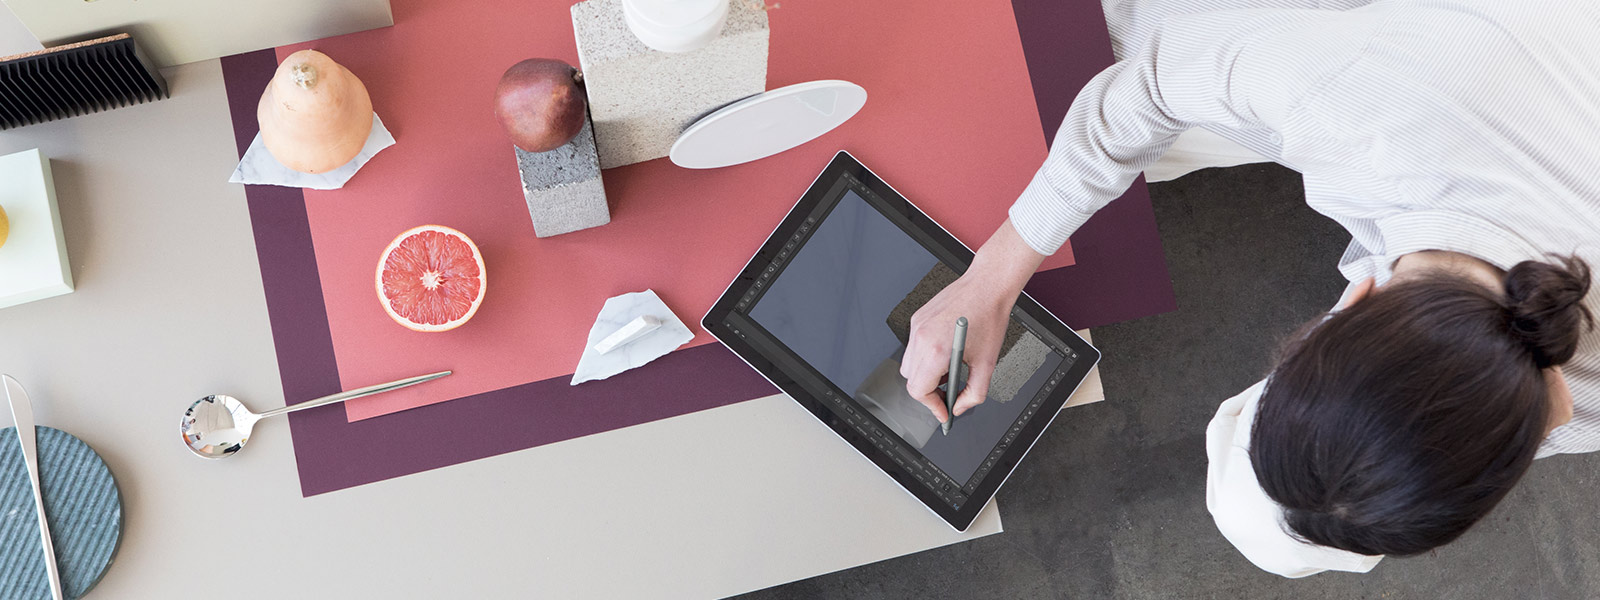 Man lounging while using Surface Pro touchscreen.